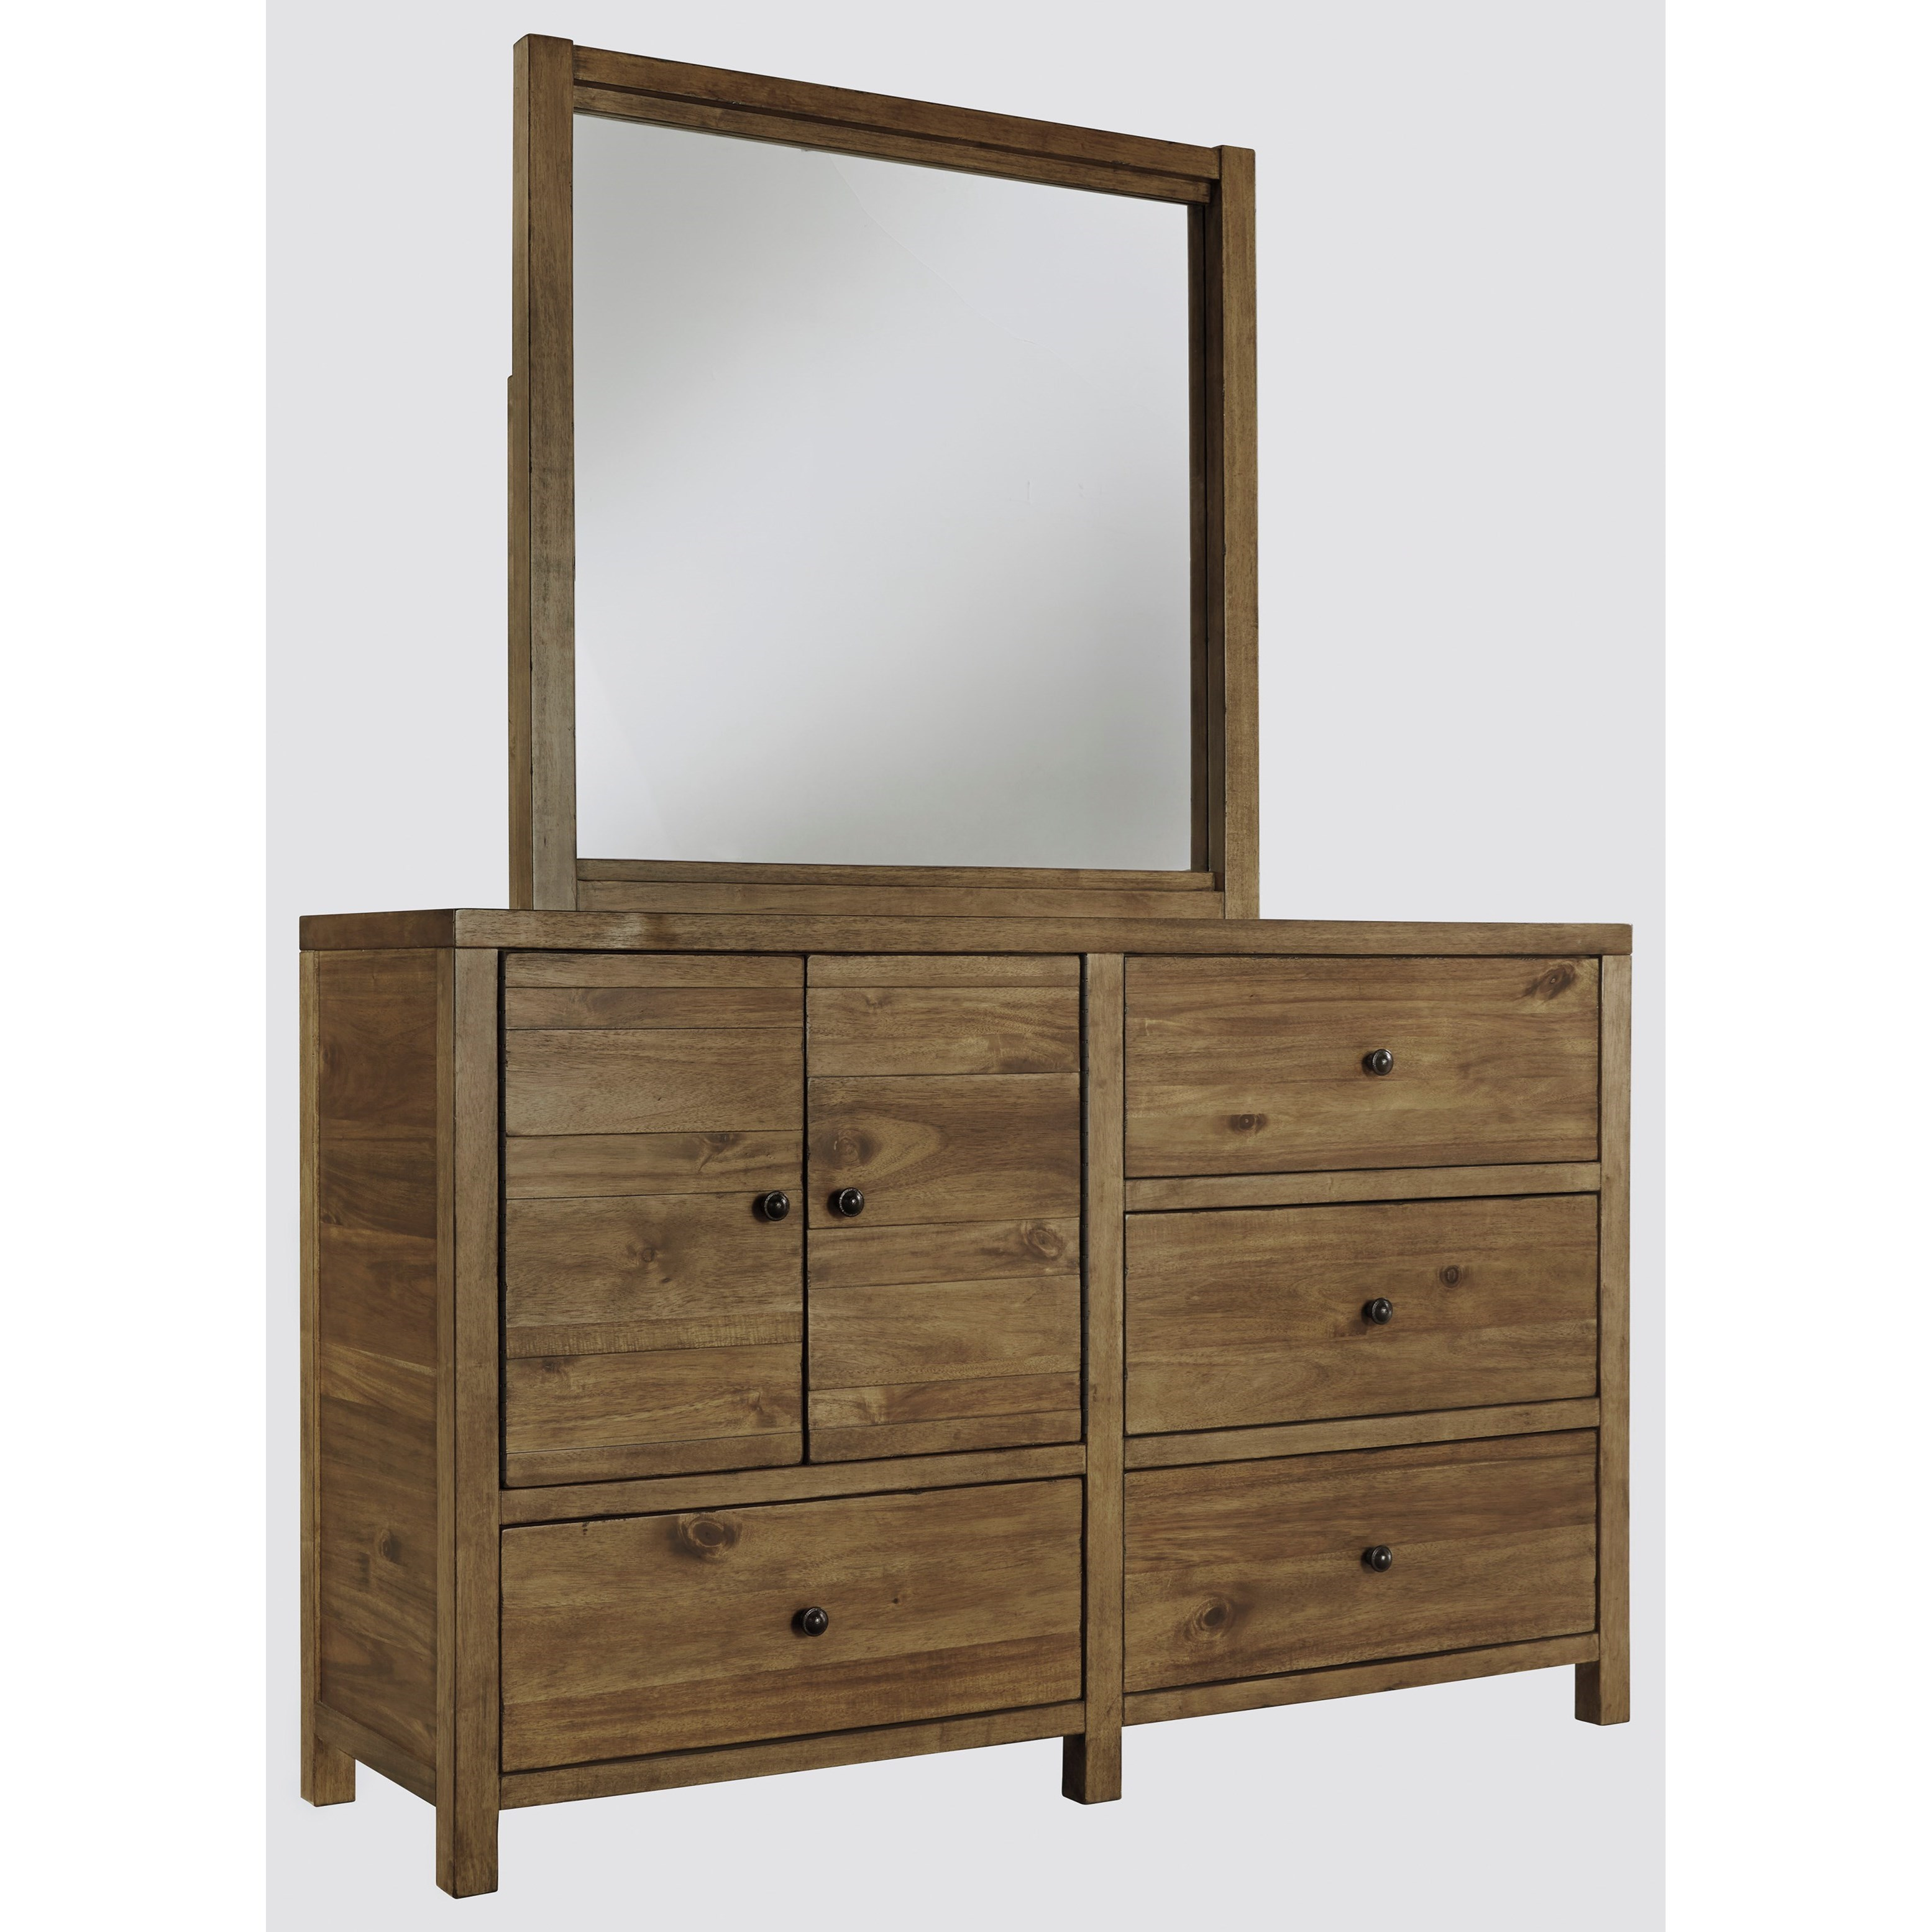 Signature Design by Ashley Fennison Dresser & Bedroom Mirror - Item Number: B544-21+26